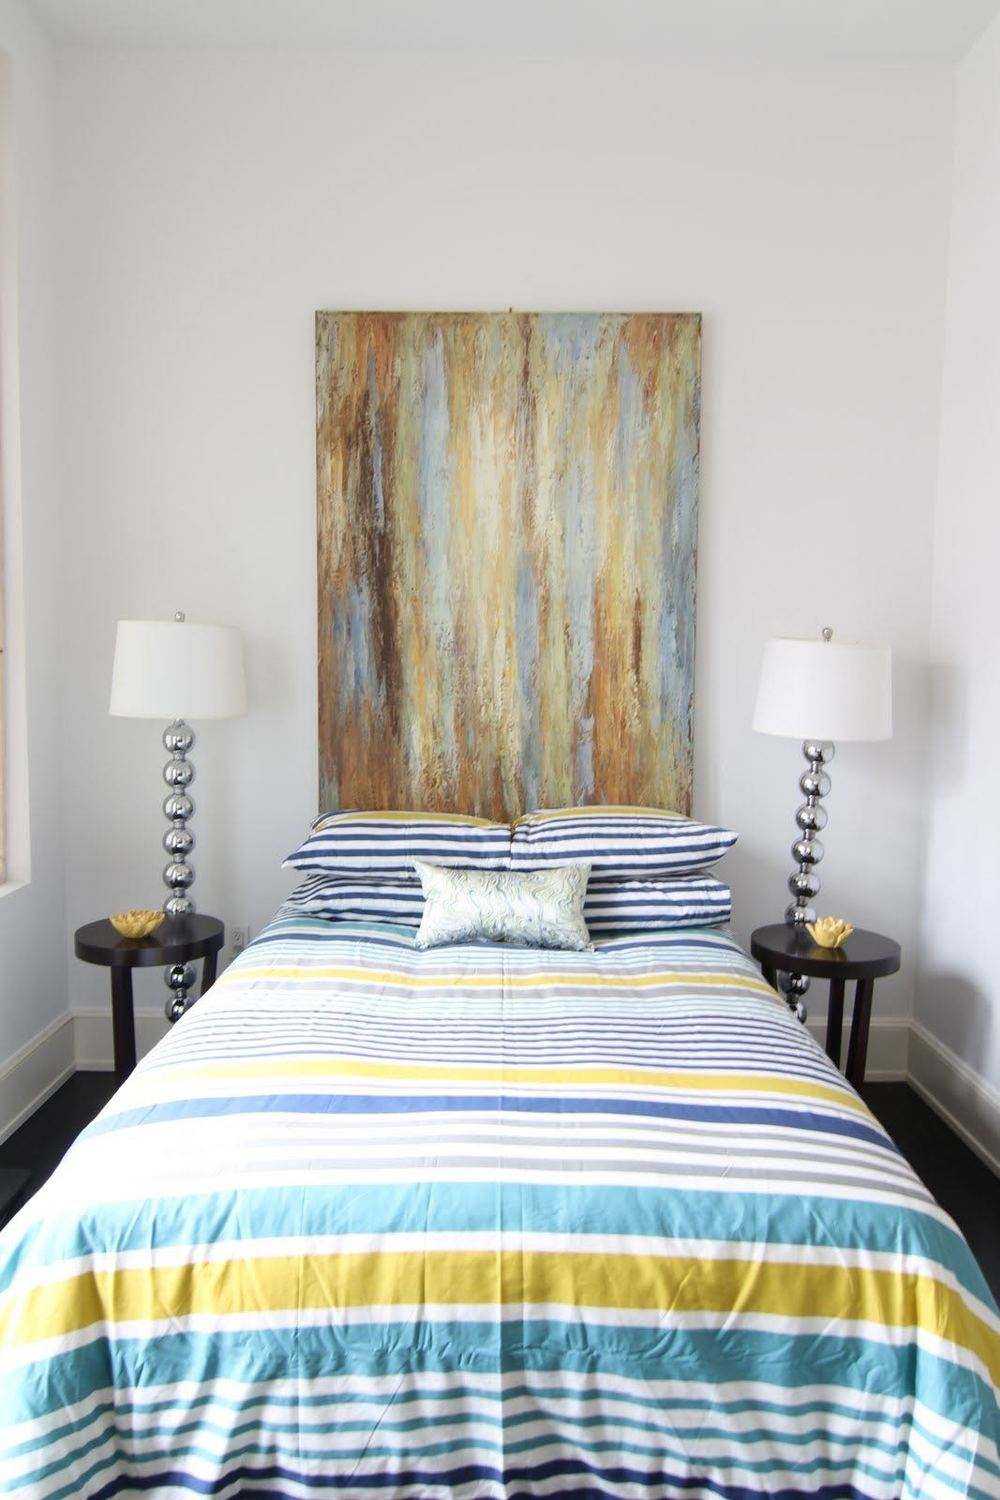 A funky guest bedroom for an area known to be a little different keeping in sync with buyers expectations.